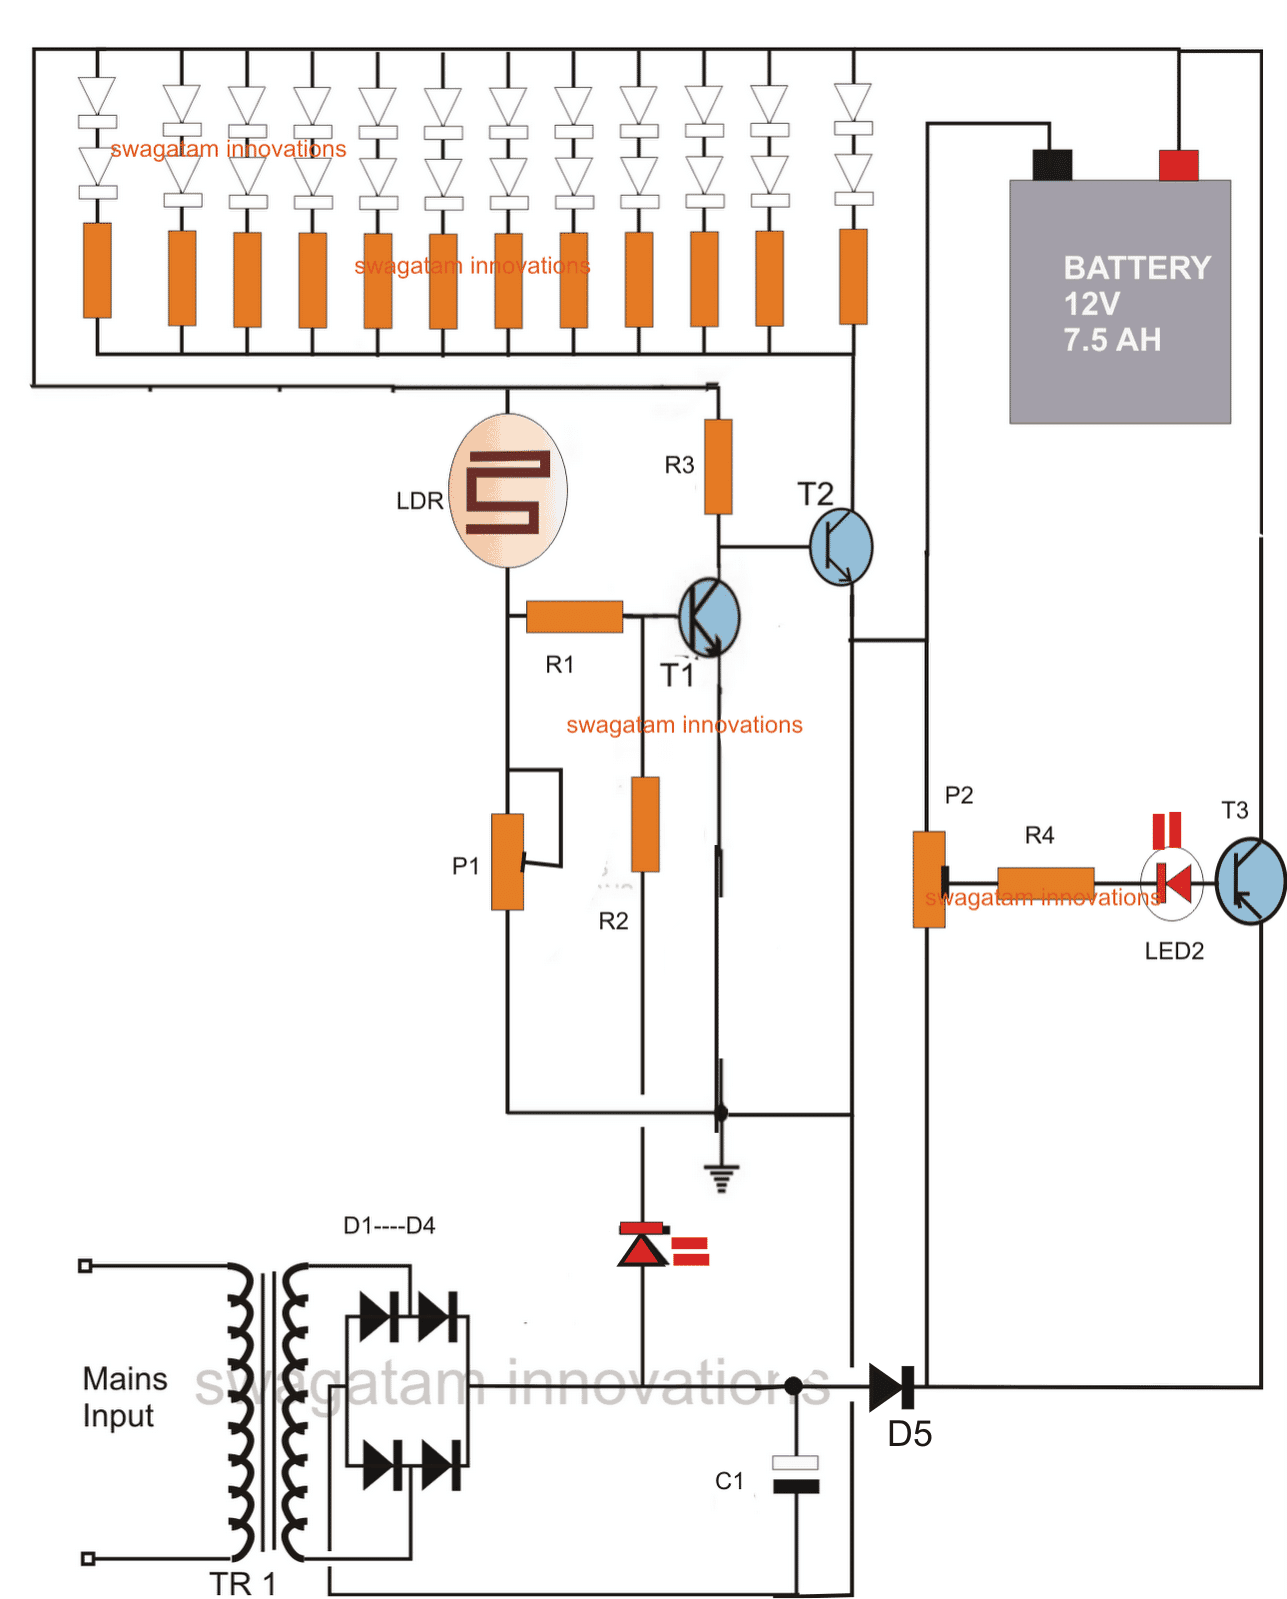 Solar Led Emergency Light Circuit Diagram: LED Emergency Light Circuit With  Battery Over Charge Protection